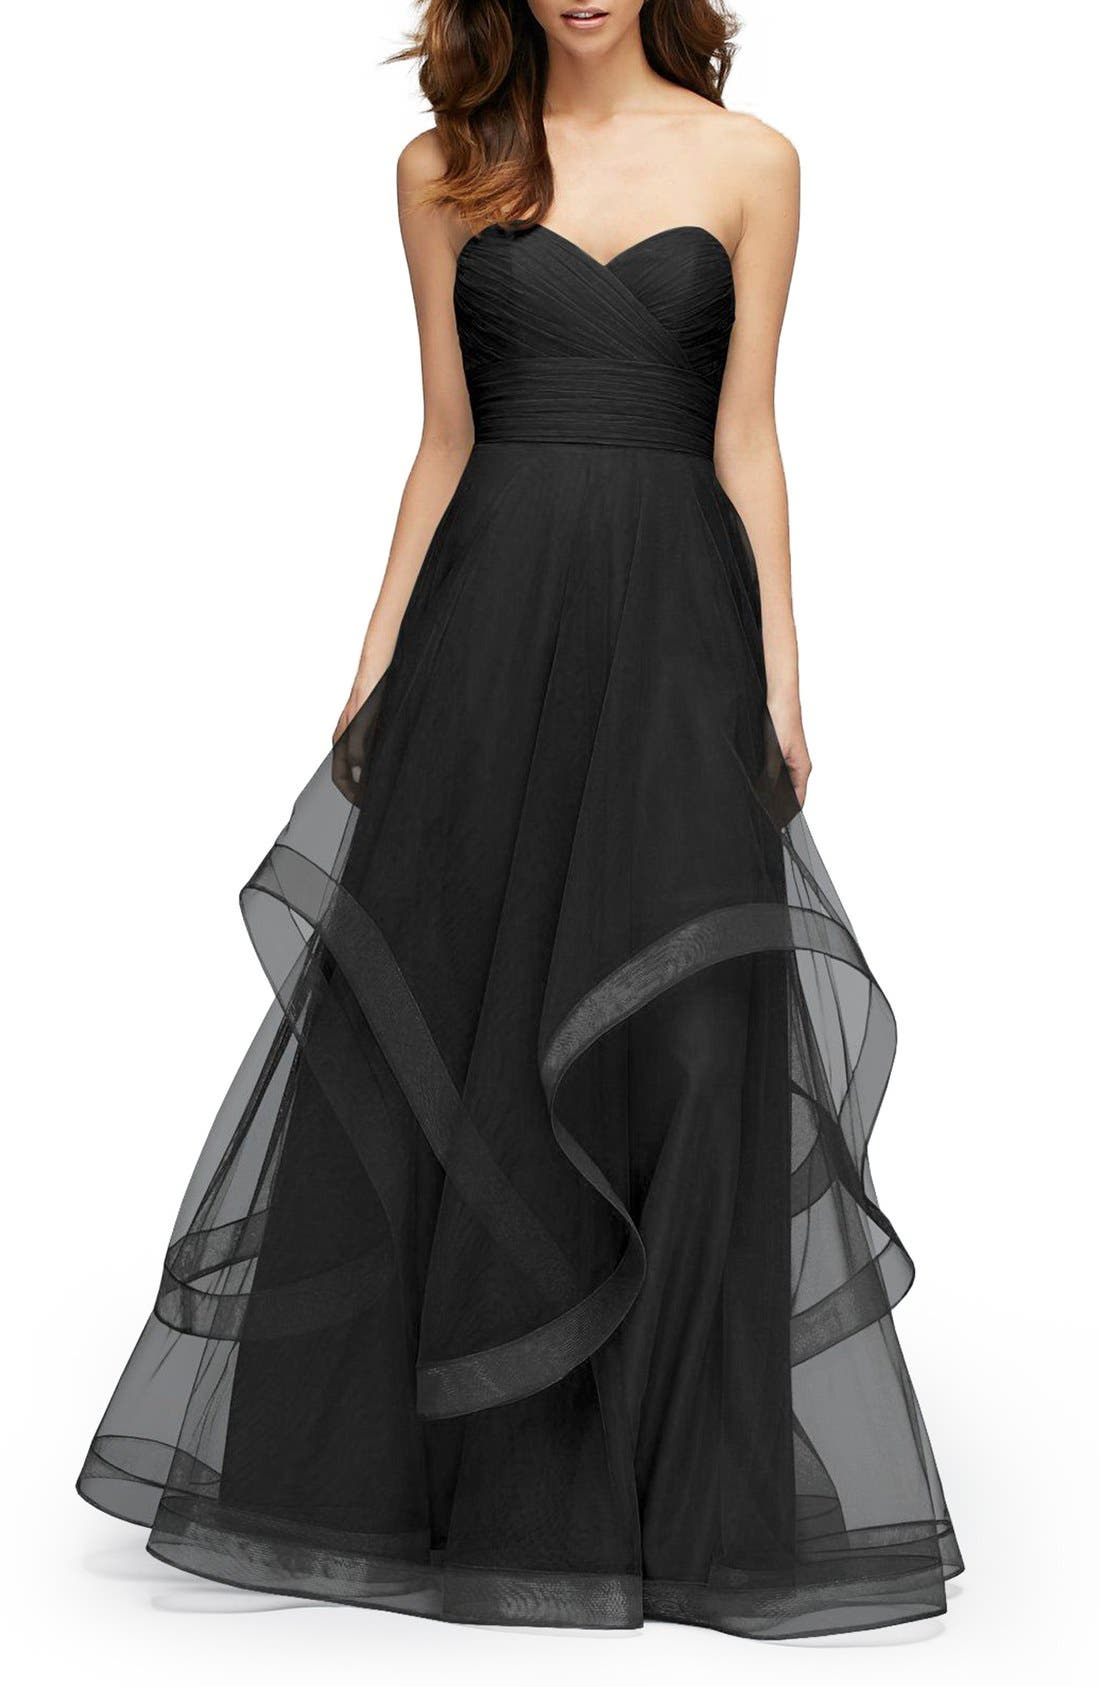 Alternate Image 1 Selected - Watters 'Florian' Strapless Horsehair Ruffle Tulle A-Line Gown